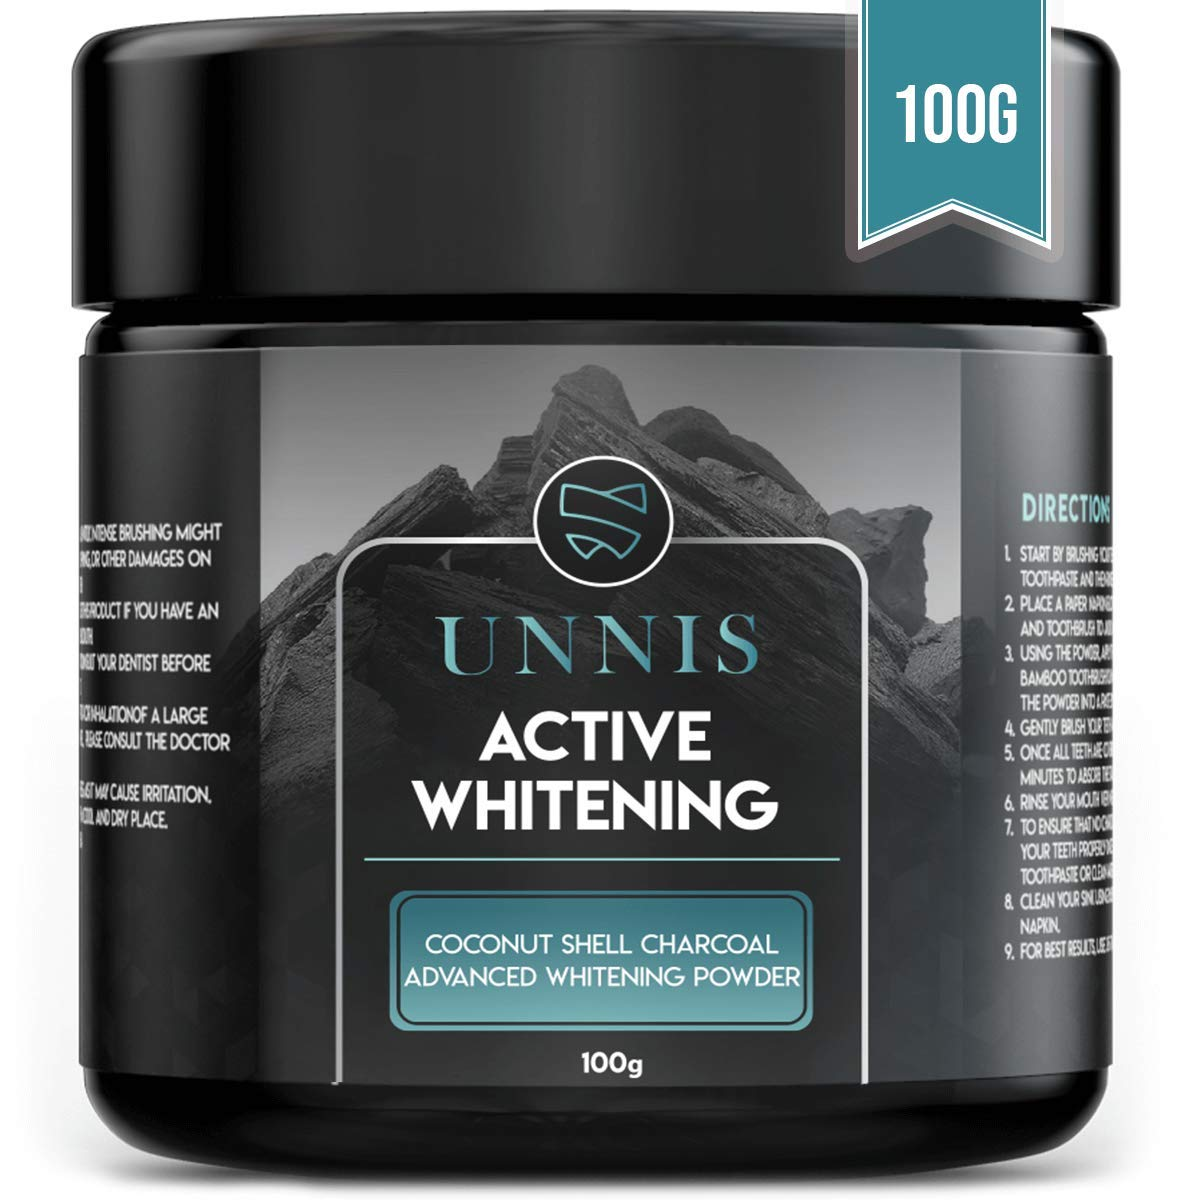 Activated Charcoal Teeth Whitening Powder Natural Teeth Whitening Toothpaste Activated Charcoal Toothpaste for Tooth Whitening Kit Safe Teeth Stain Removal